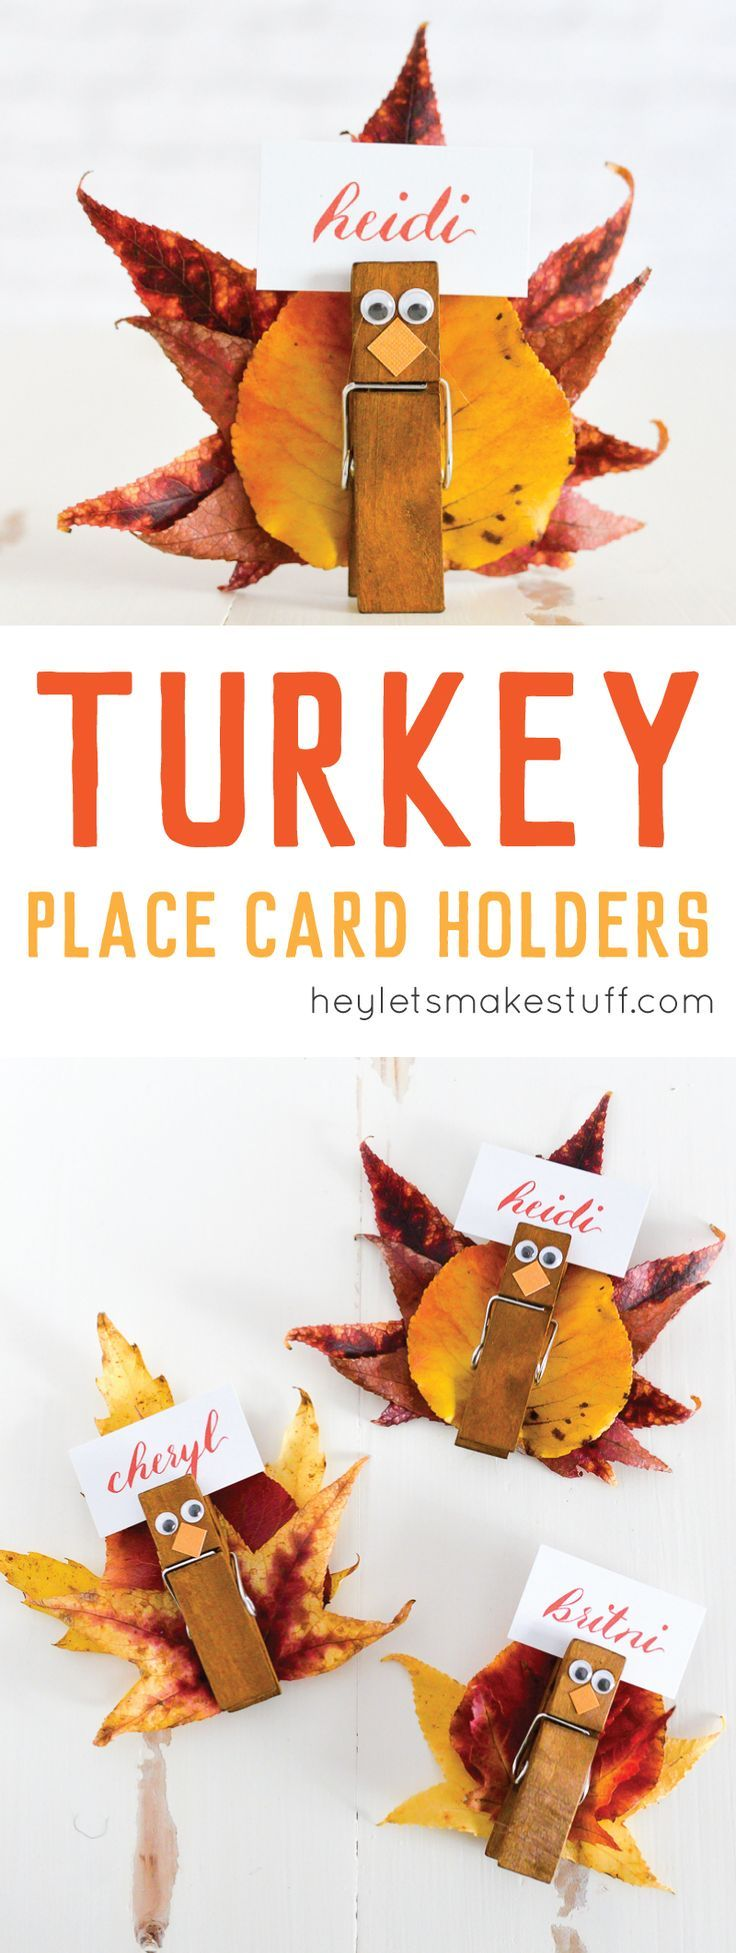 These easy turkey place card holders are super simple to make -- gather fall leaves and attach them to a clothespin with eyes and beak to make a Thanksgiving place card everyone will love. {sponsored}